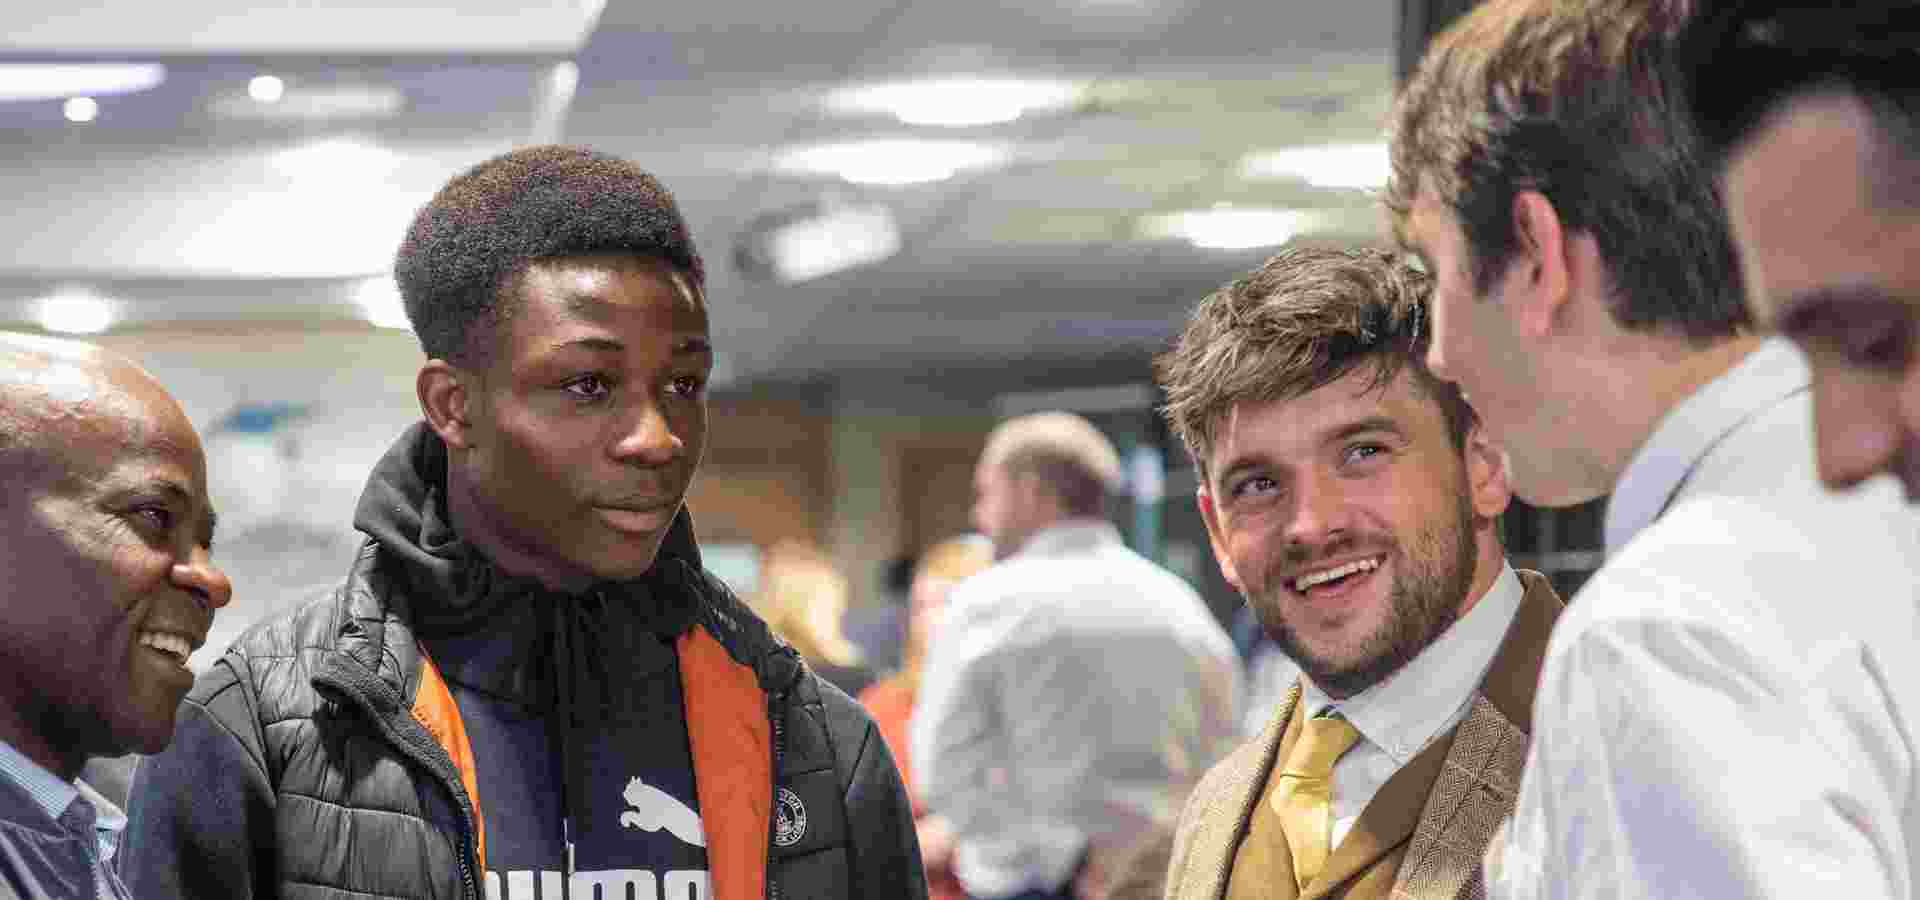 UCFB Undergraduate Open Days